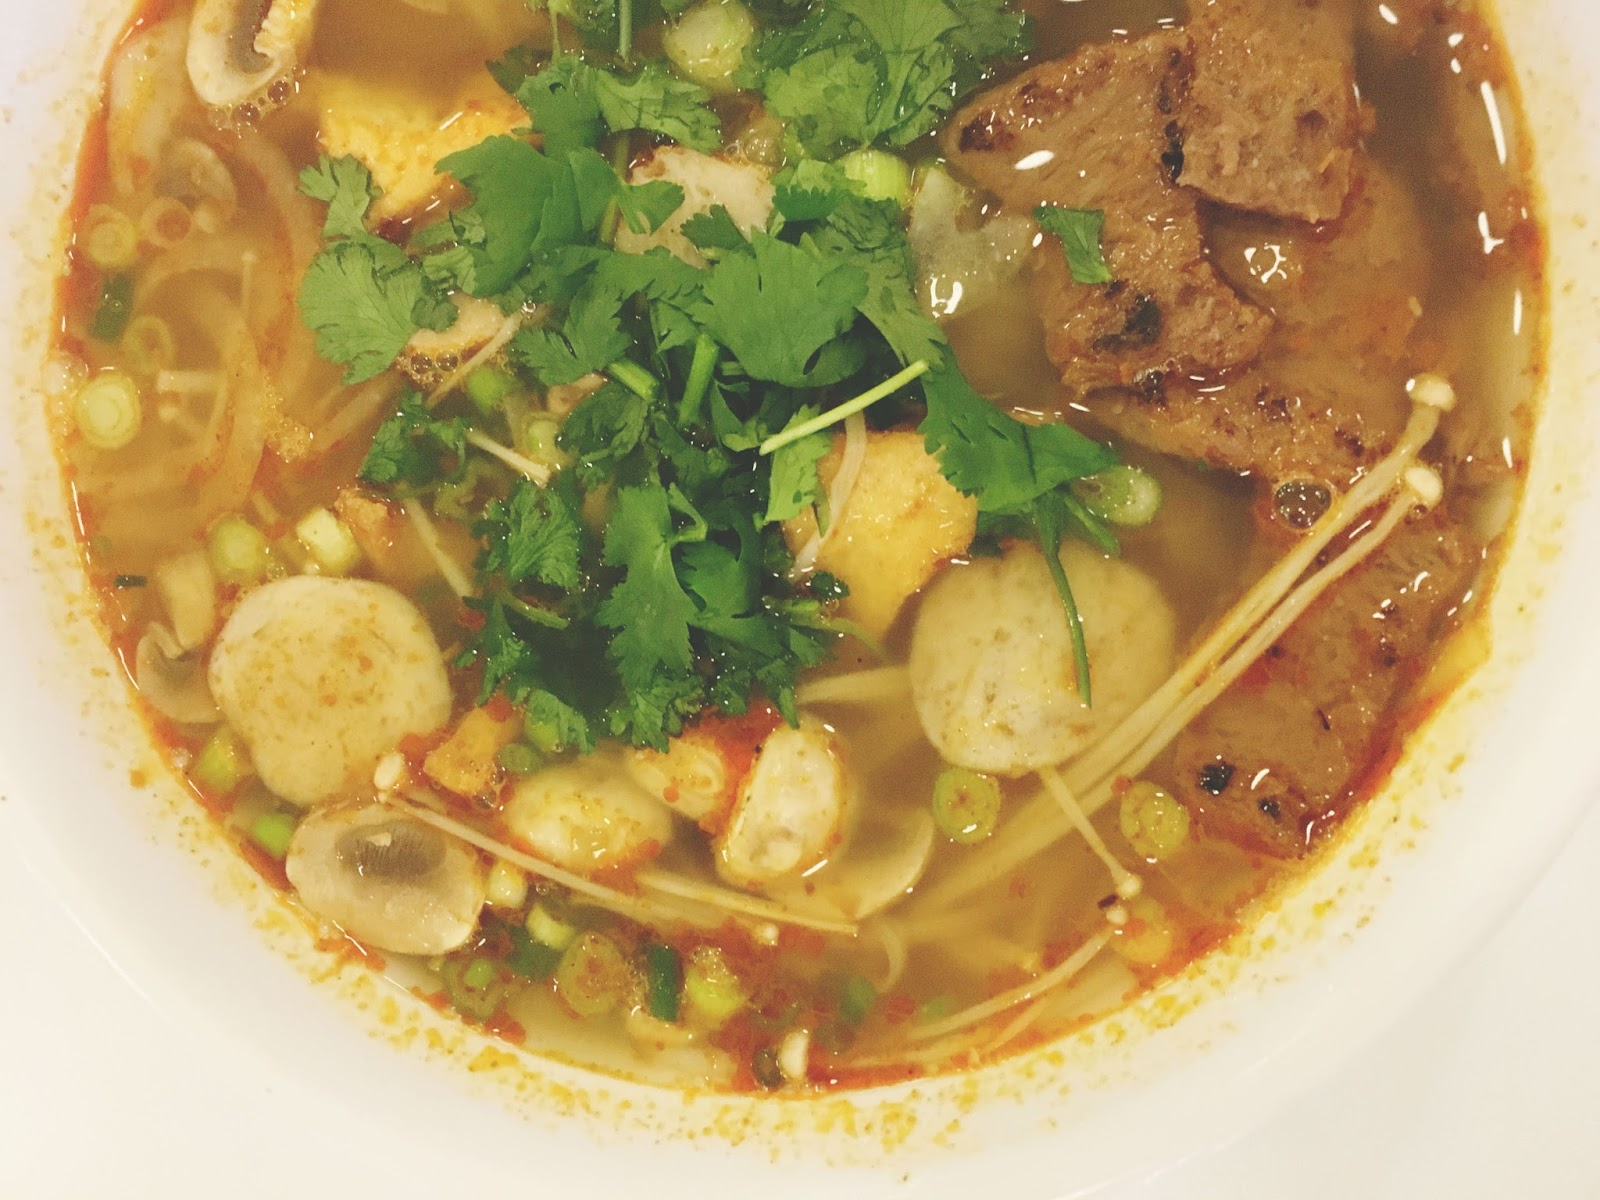 bun hue at Loving Hut - a vegan restaurant in Houston, Texas